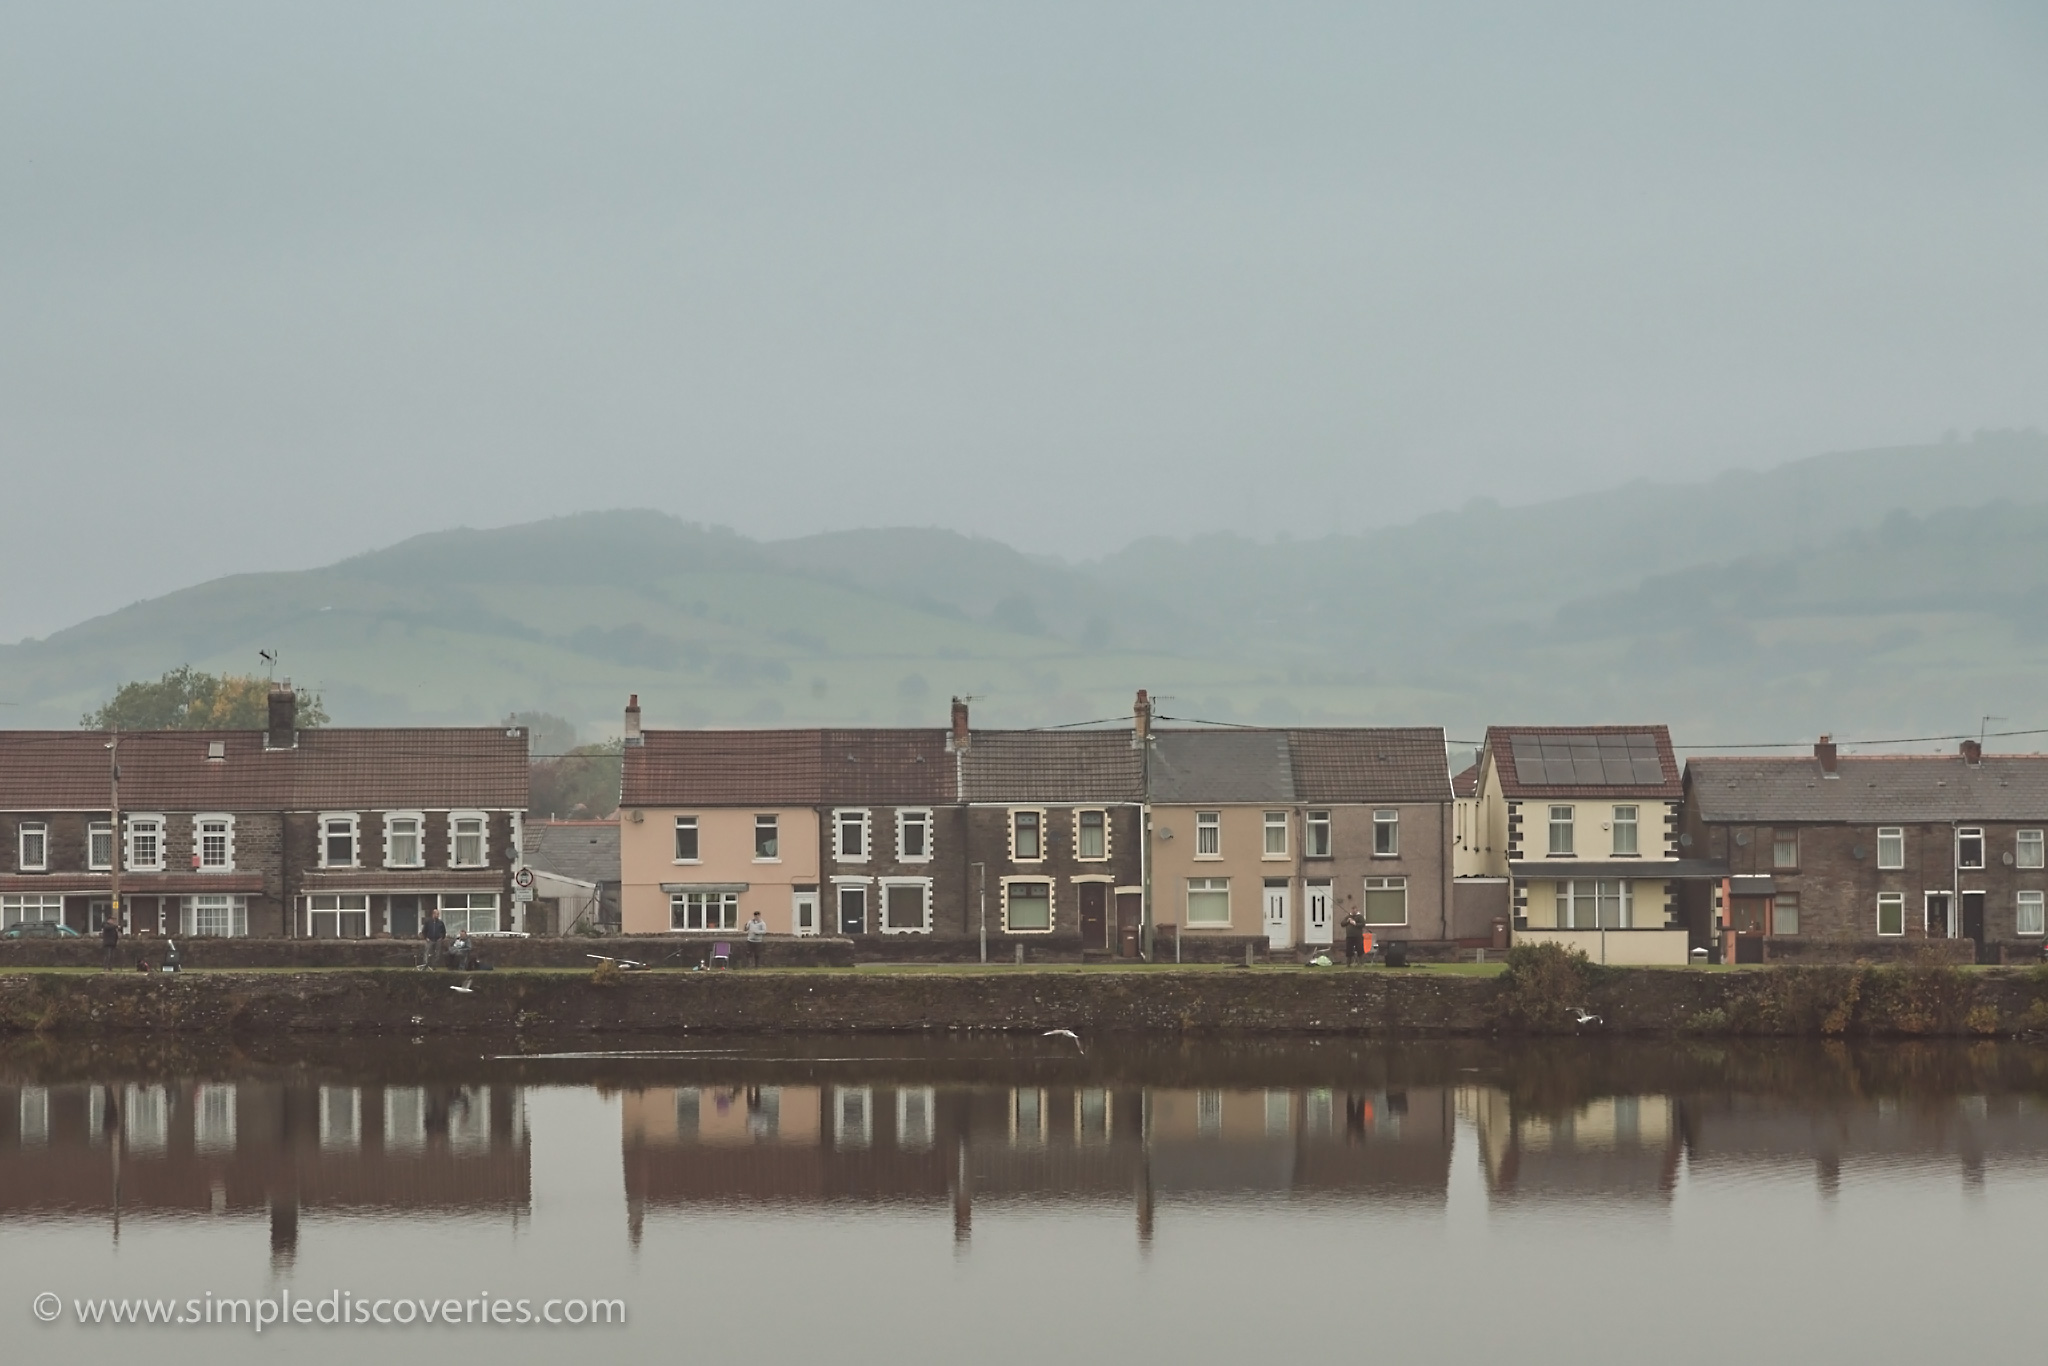 caerphilly_town_reflection_uk